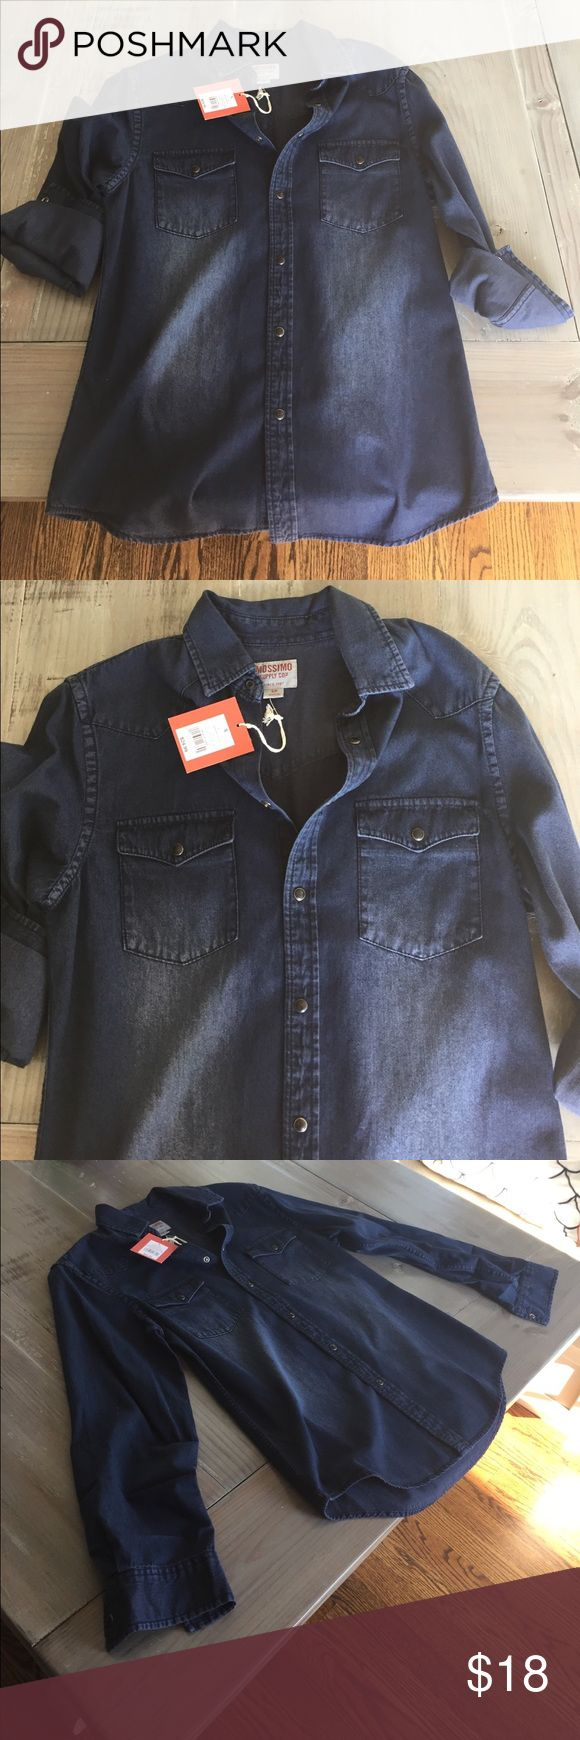 Mossimo Denim Button Up New With Tags Size Small Mossimo Denim Button Up. New with tags. Never worn. Size is small. Thanks and let me know if you have any questions! Mossimo Supply Co Tops Button Down Shirts